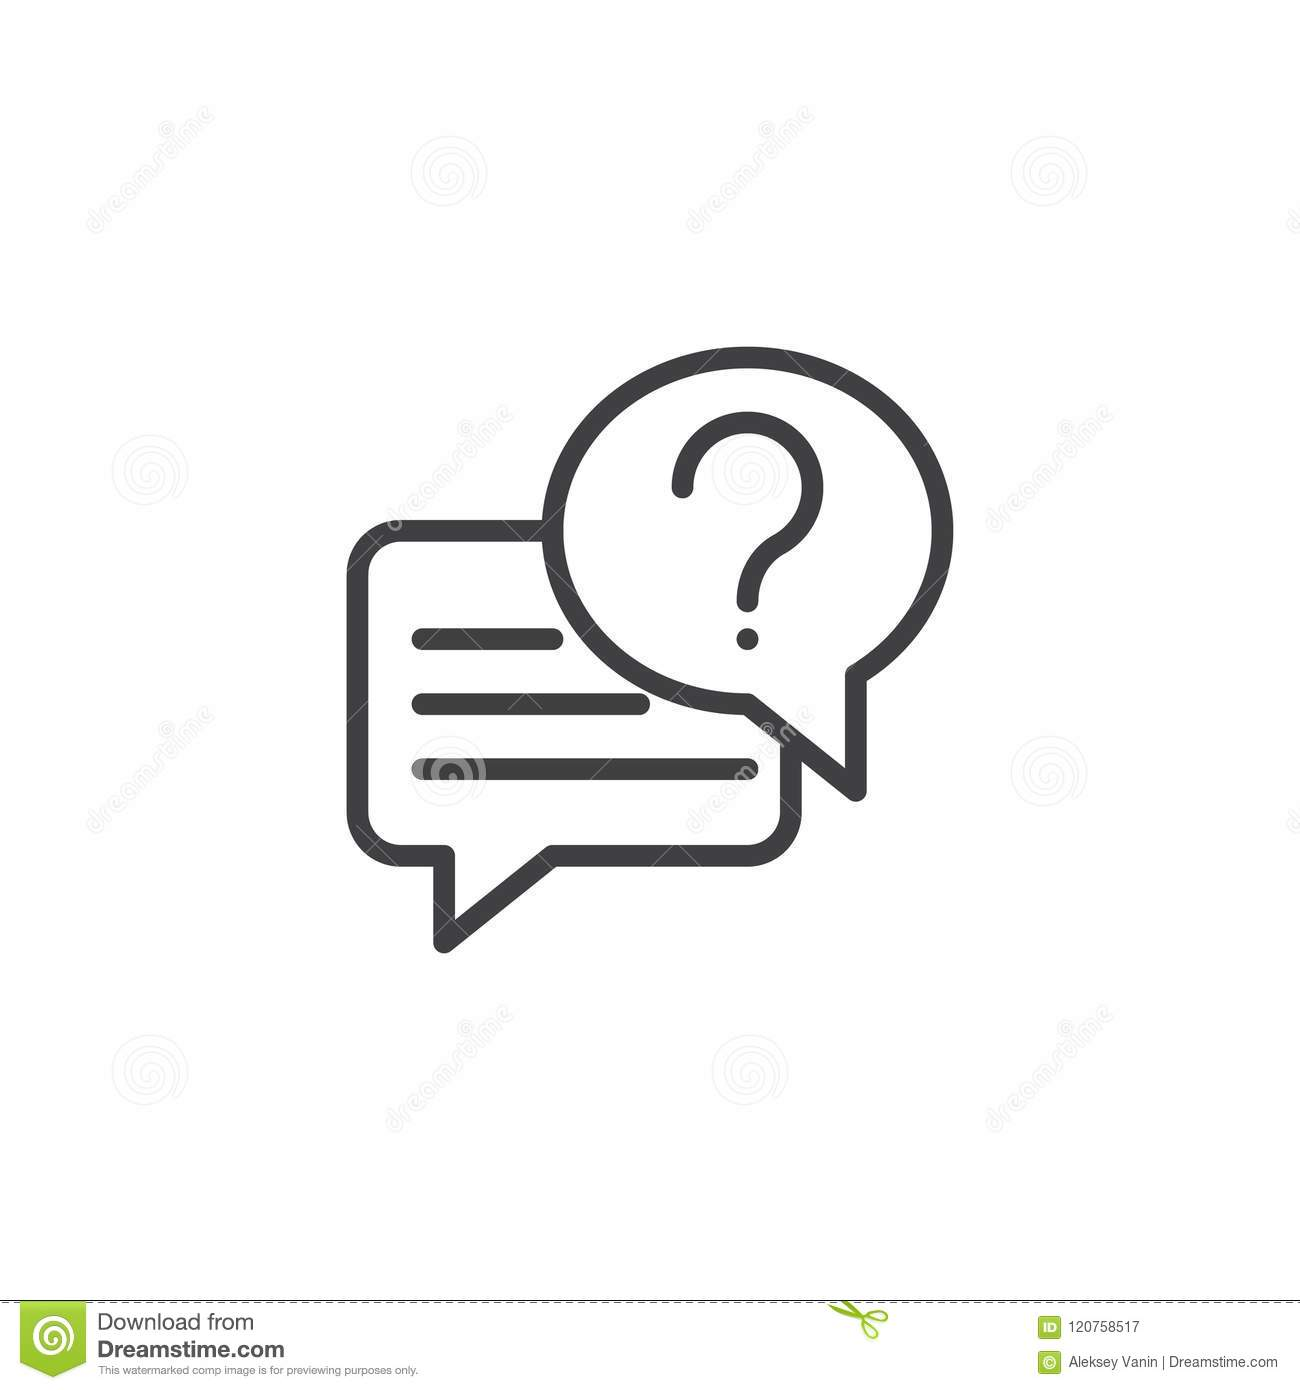 Conversation chat outline icon